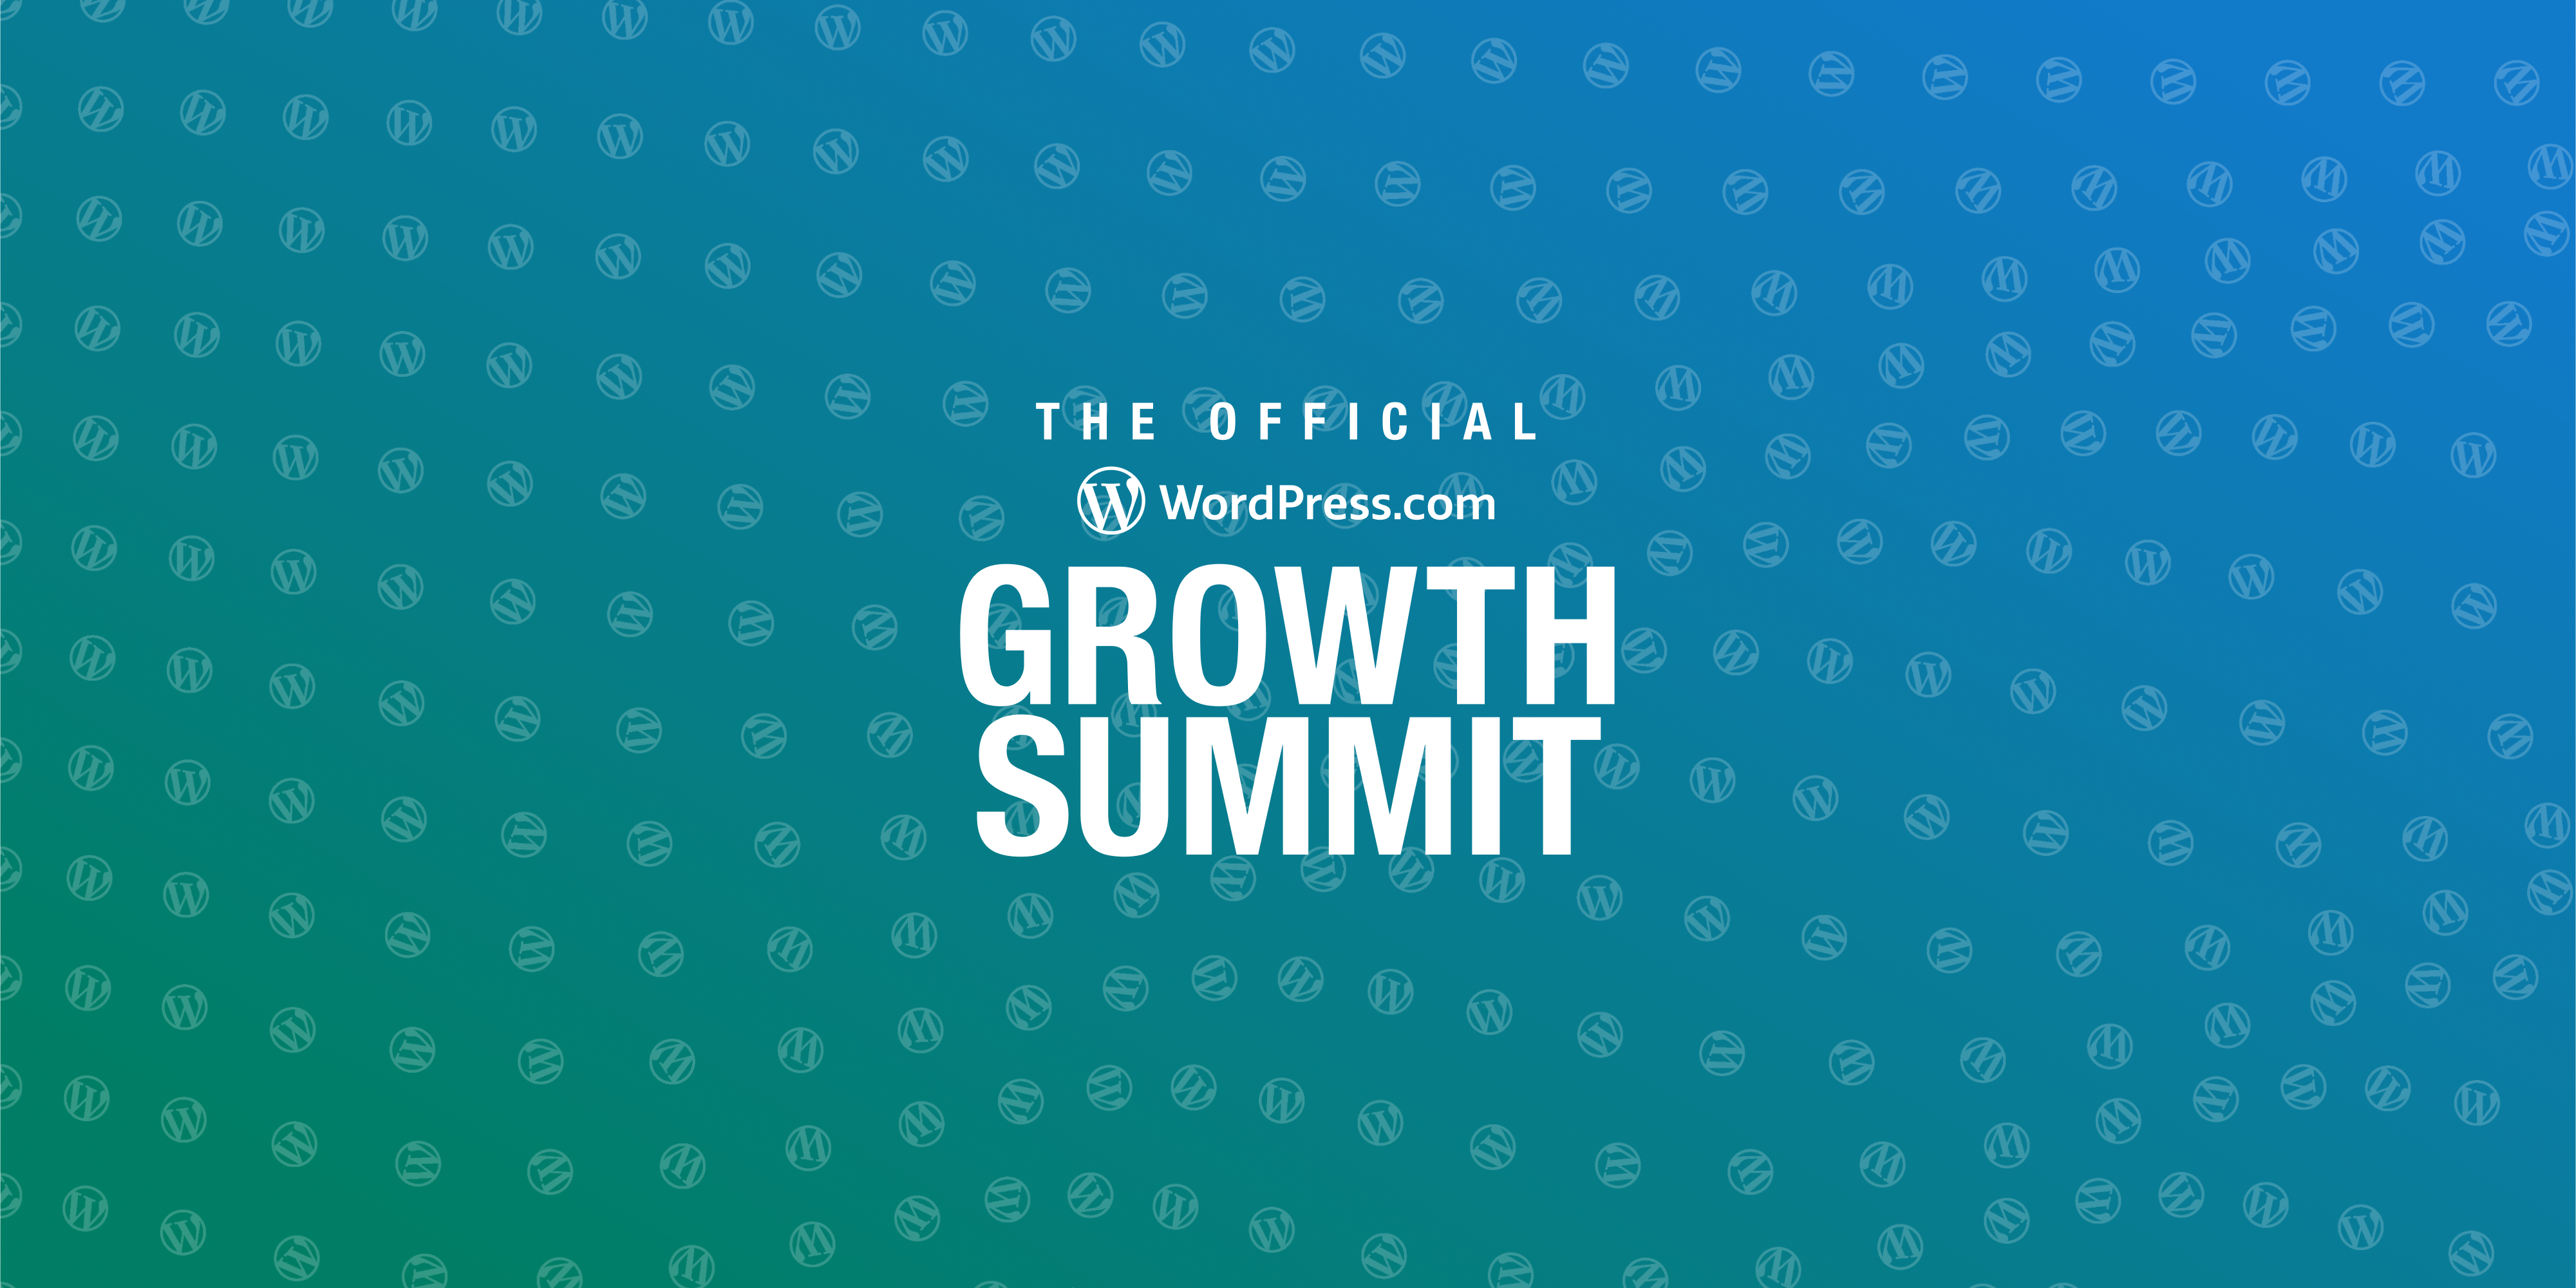 The First-Ever WordPress.com Growth Summit Is Coming, and You Won't Want to Miss It